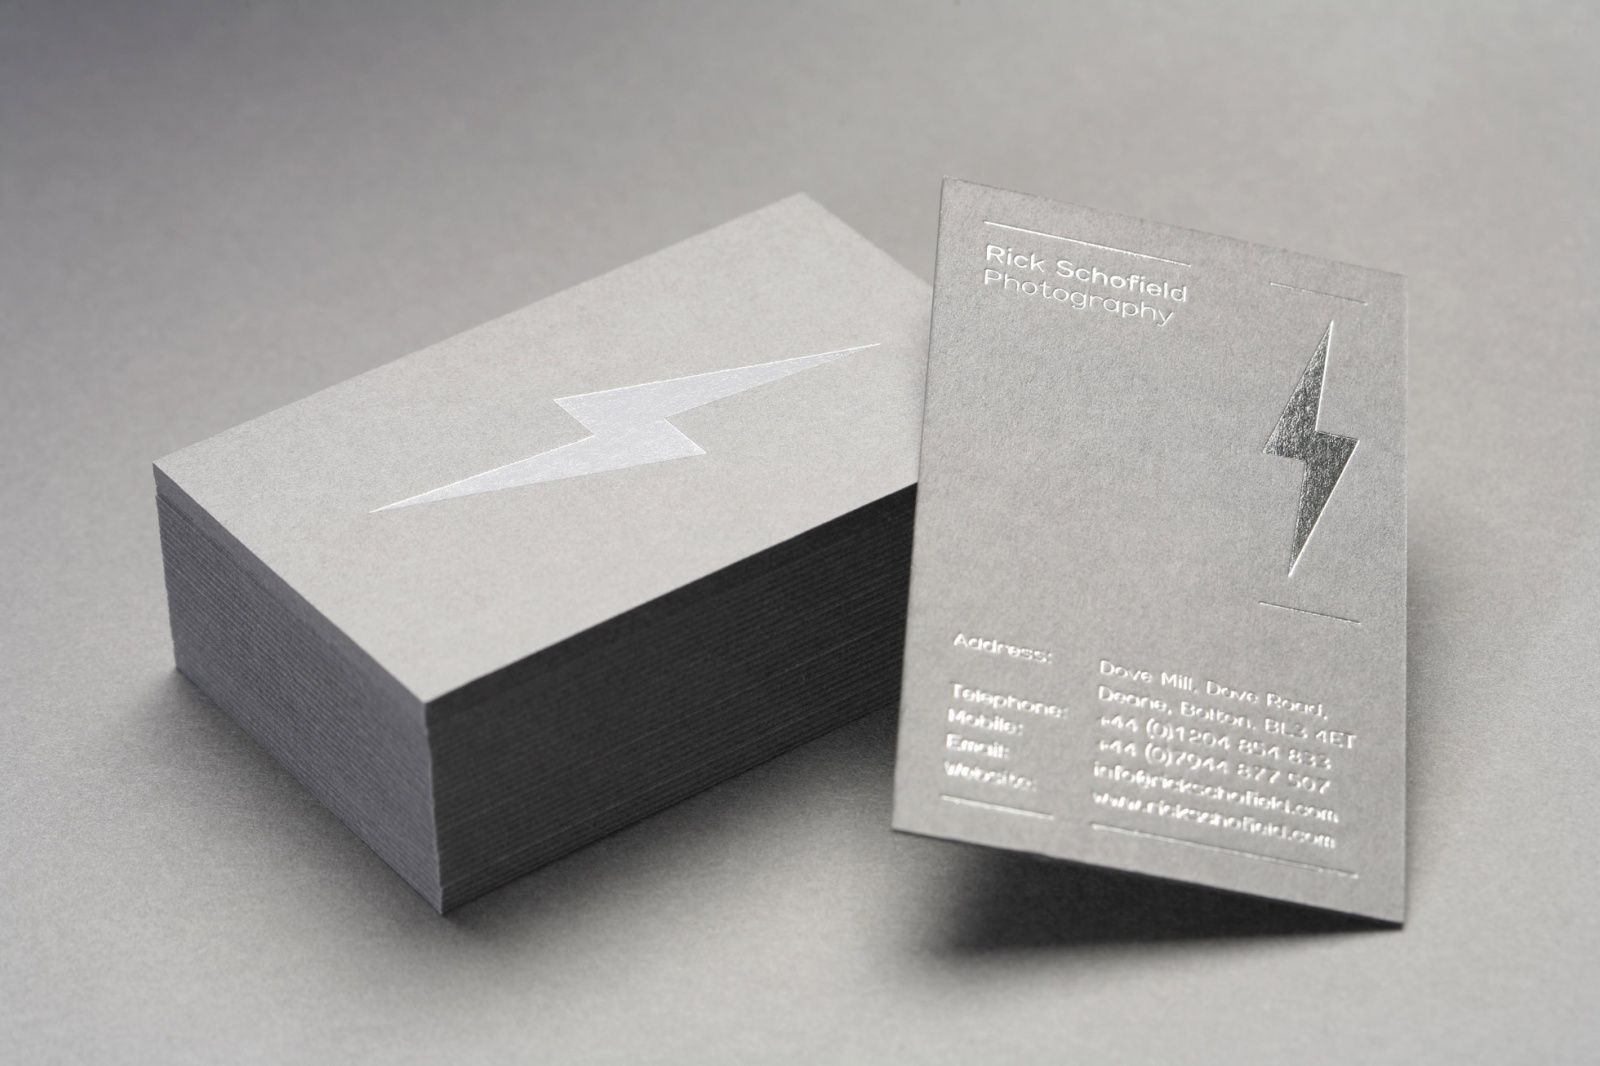 Business cards with a grey board a silver foil print finish for business cards with a grey board a silver foil print finish for rick schofield designed by reheart